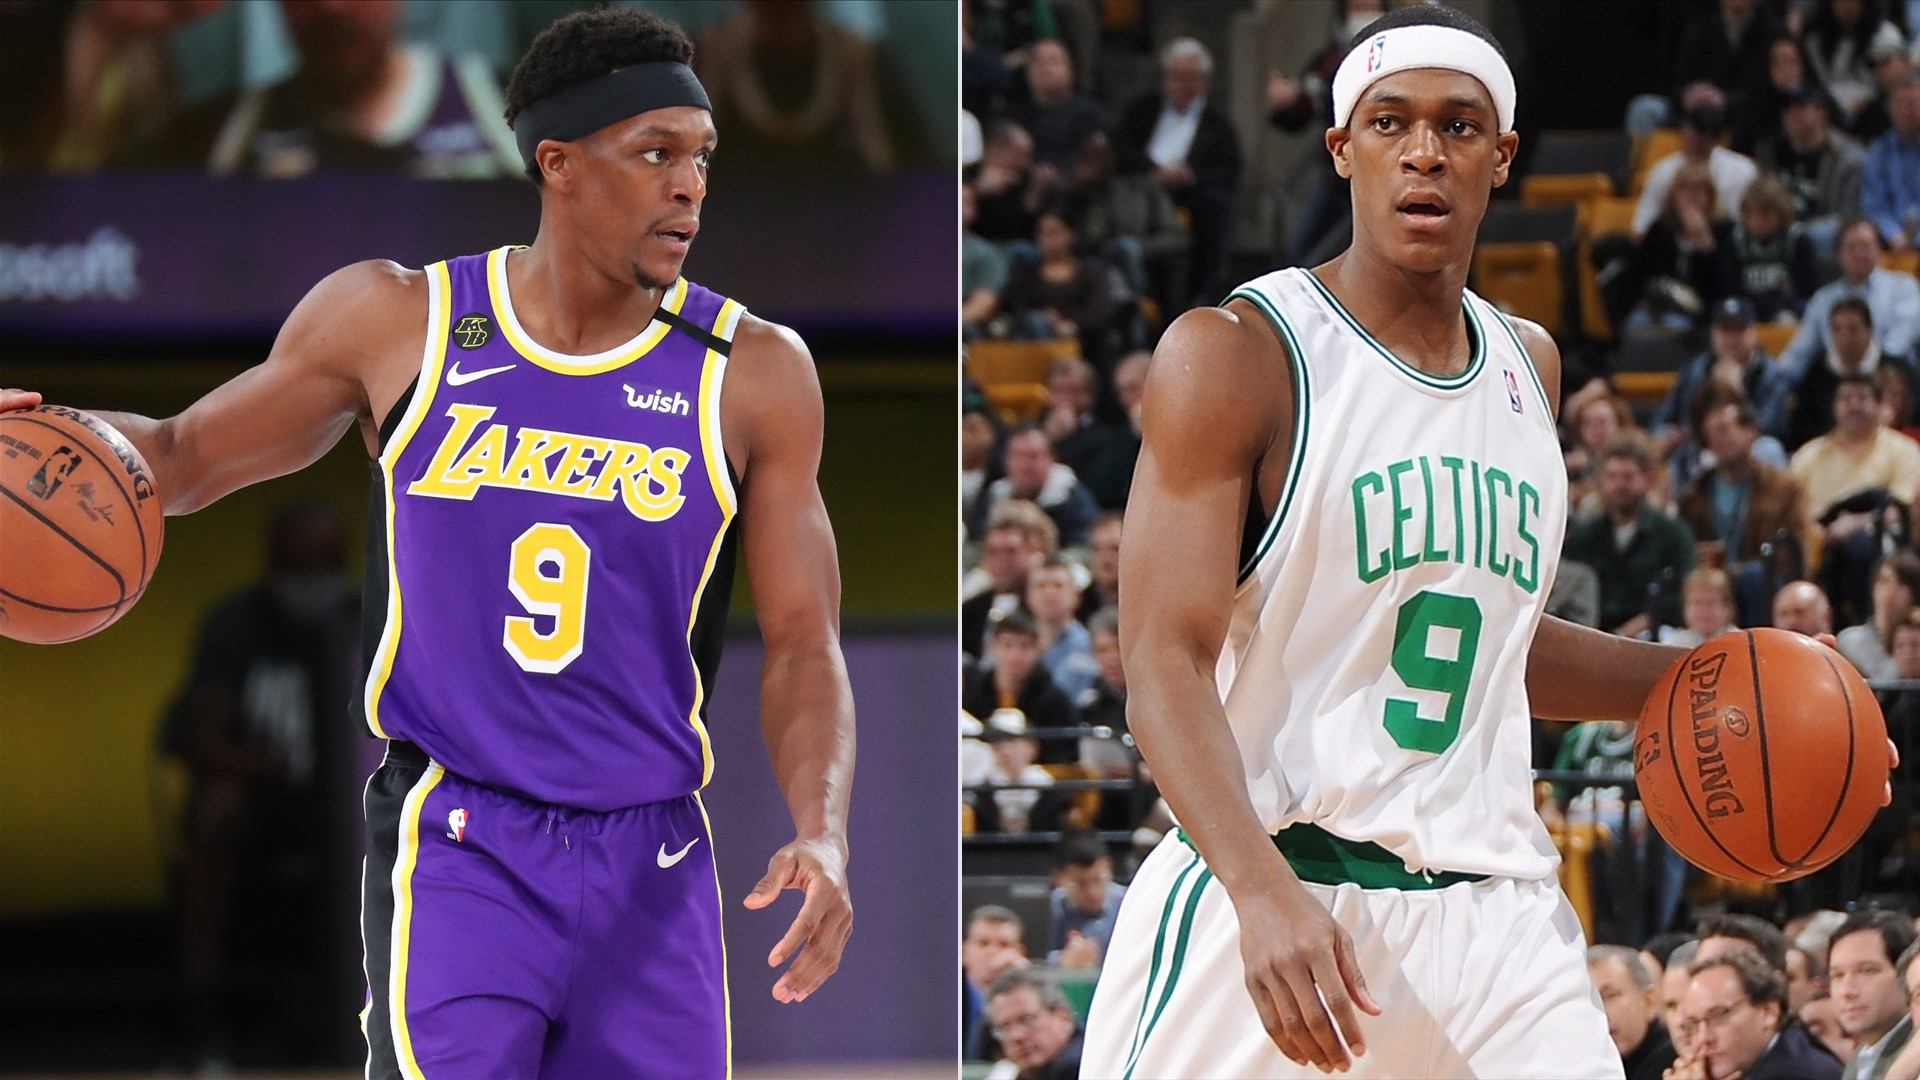 NBA Finals 2020: Los Angeles Lakers guard Rajon Rondo has the opportunity  to make unique history | NBA.com Australia | The official site of the NBA